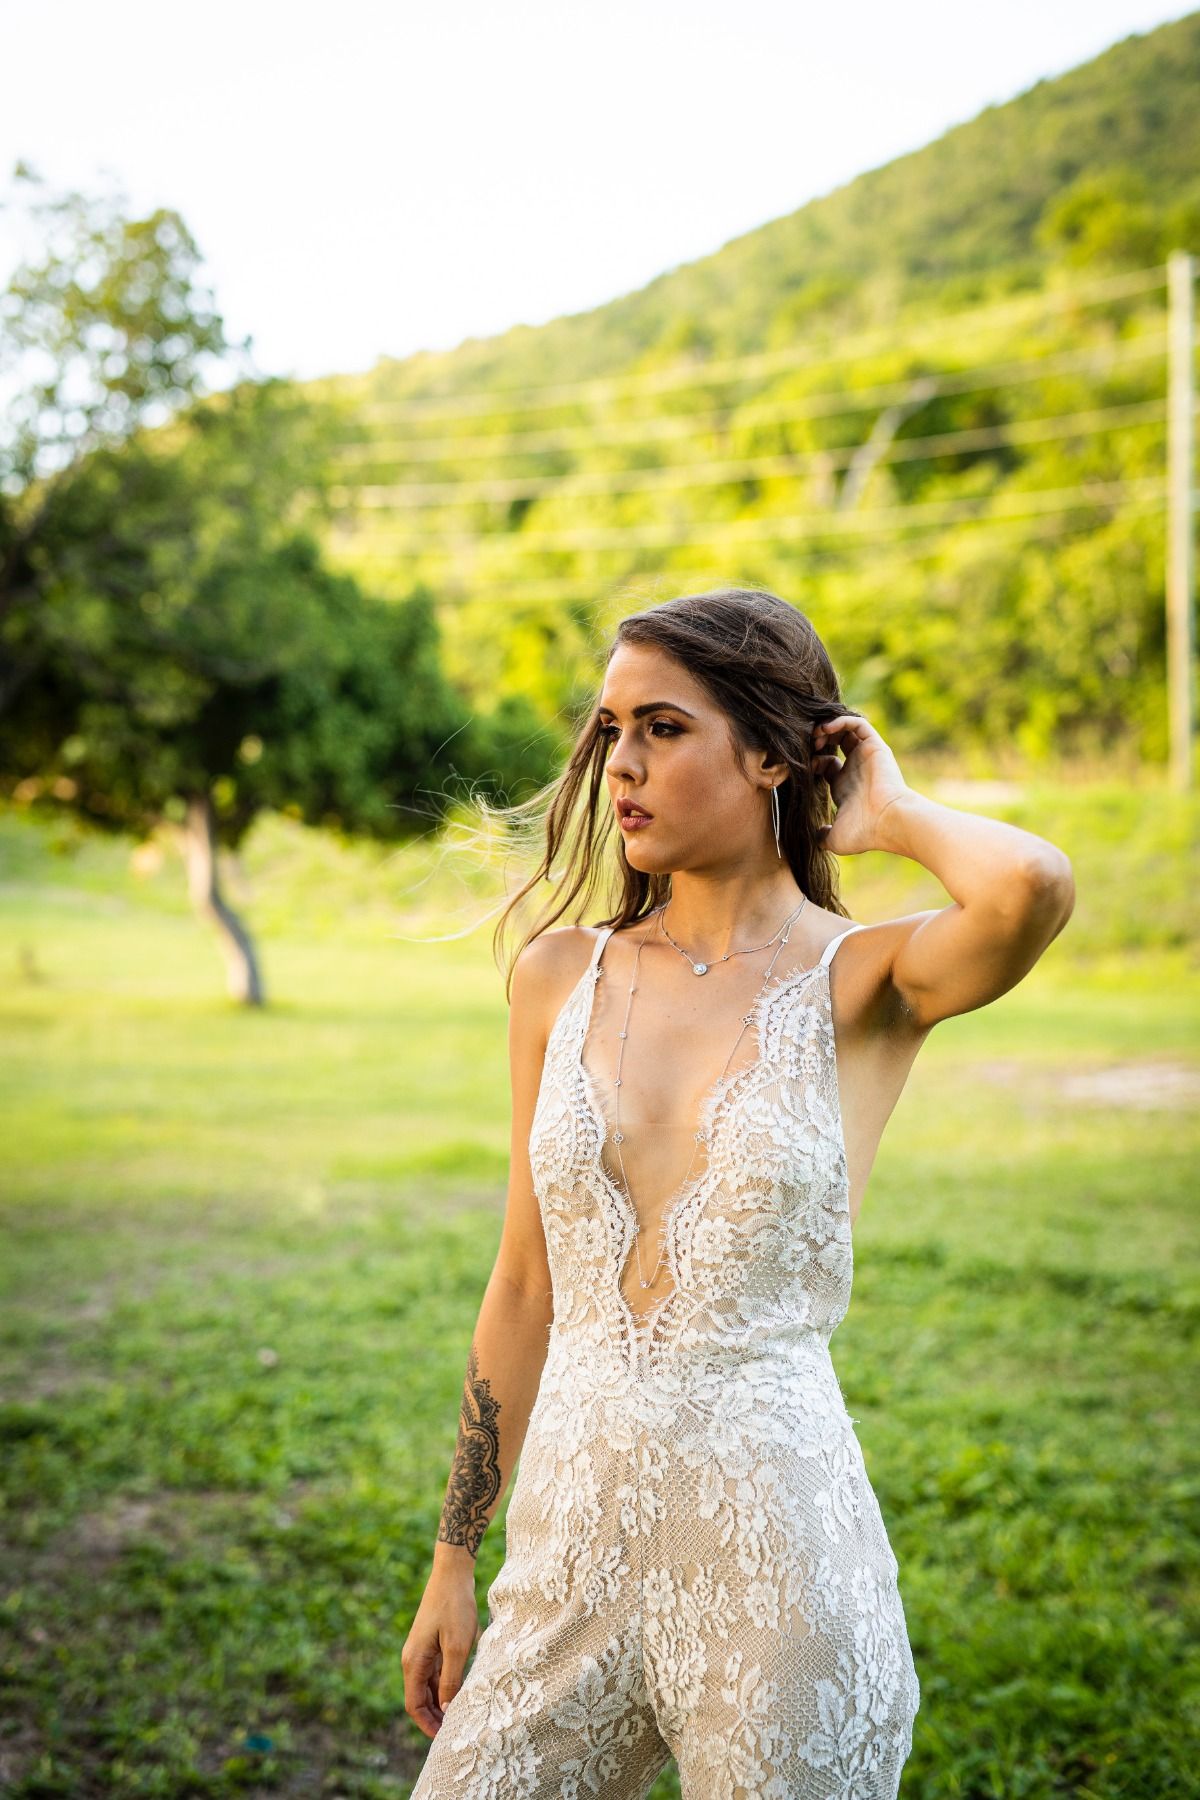 Add A Little Spice To Your Day With This Vibrant Caribbean Styled Shoot